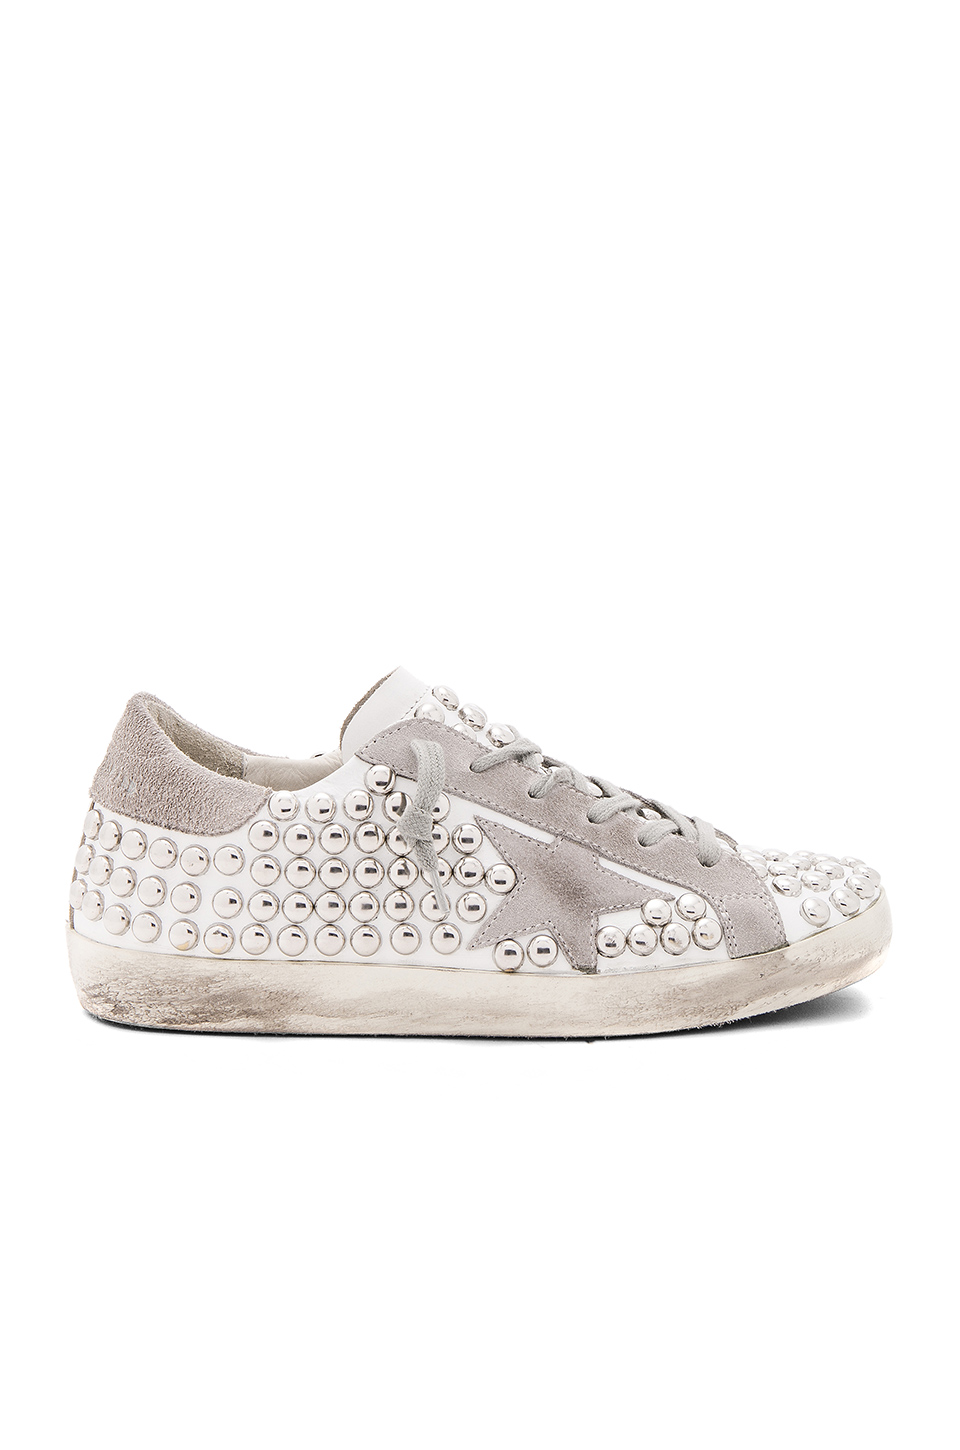 Golden Goose Superstar Distressed Studded Suede And Leather